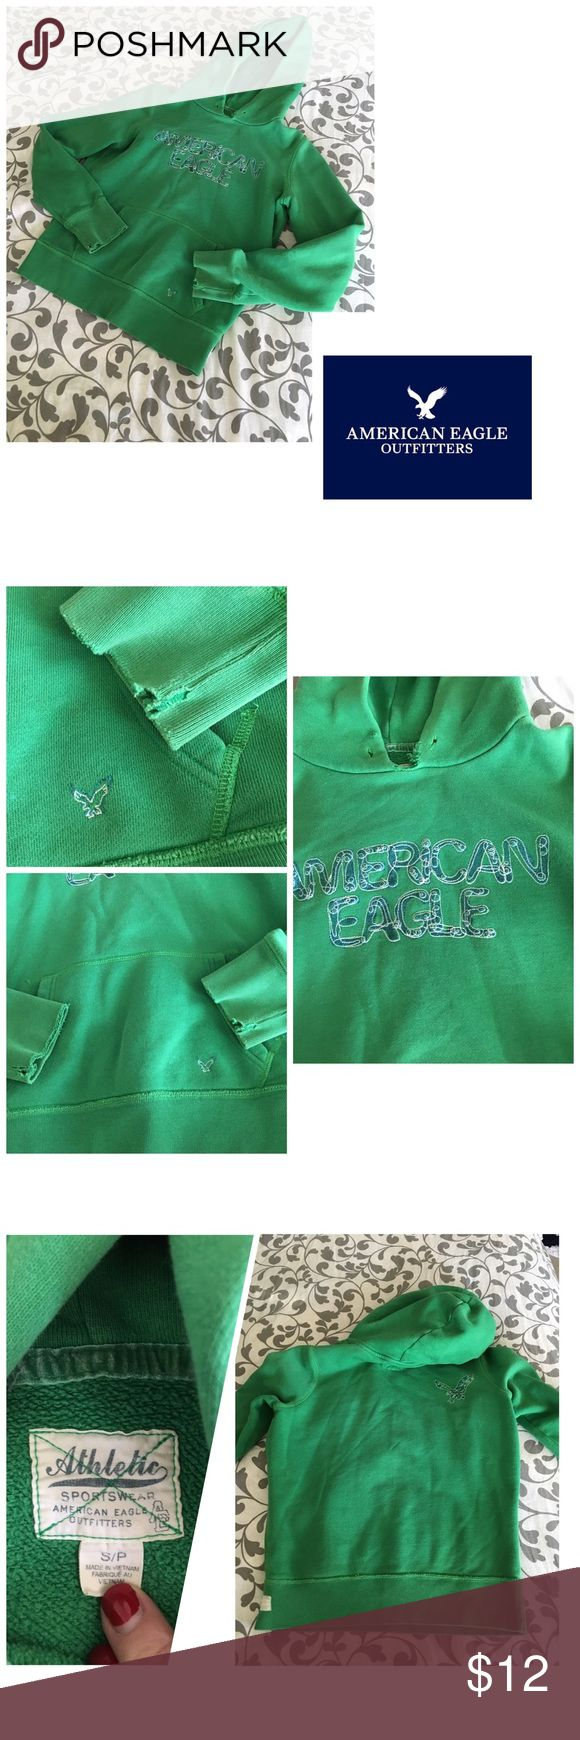 American Eagle green pullover hoodie Well loved, distressed everywhere. Please see all pictures. PLEASE, REASONABLE OFFERS ONLY!  -Smoke and pet free - If its $10 or under, I WILL NOT accept offers. -I do not model anything; everything looks different on everyone and I don't wasn't too Jade that. I will put the item on a dress form or find factory pics and provide measurements. -NO HOLDS, NO TRADES, POSH RULES ONLY! American Eagle Outfitters Tops Sweatshirts & Hoodies